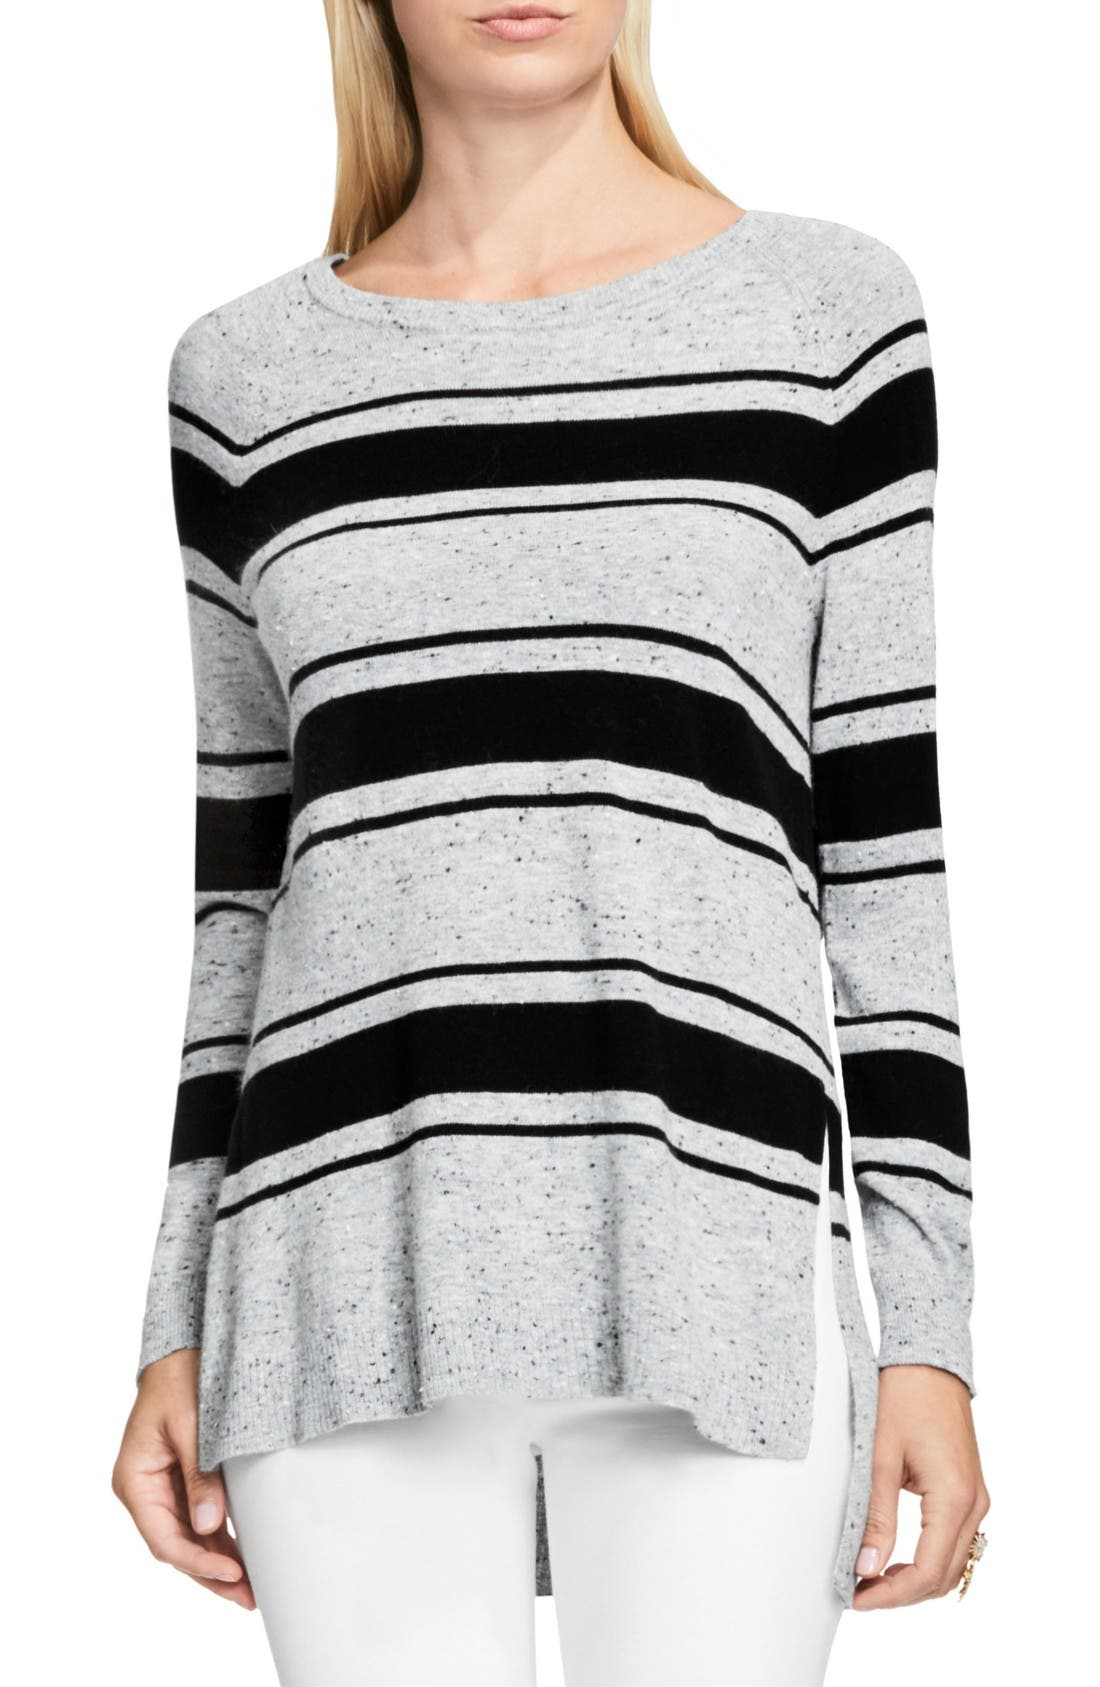 Alternate Image 1 Selected - Vince Camuto Stripe Speckled Sweater